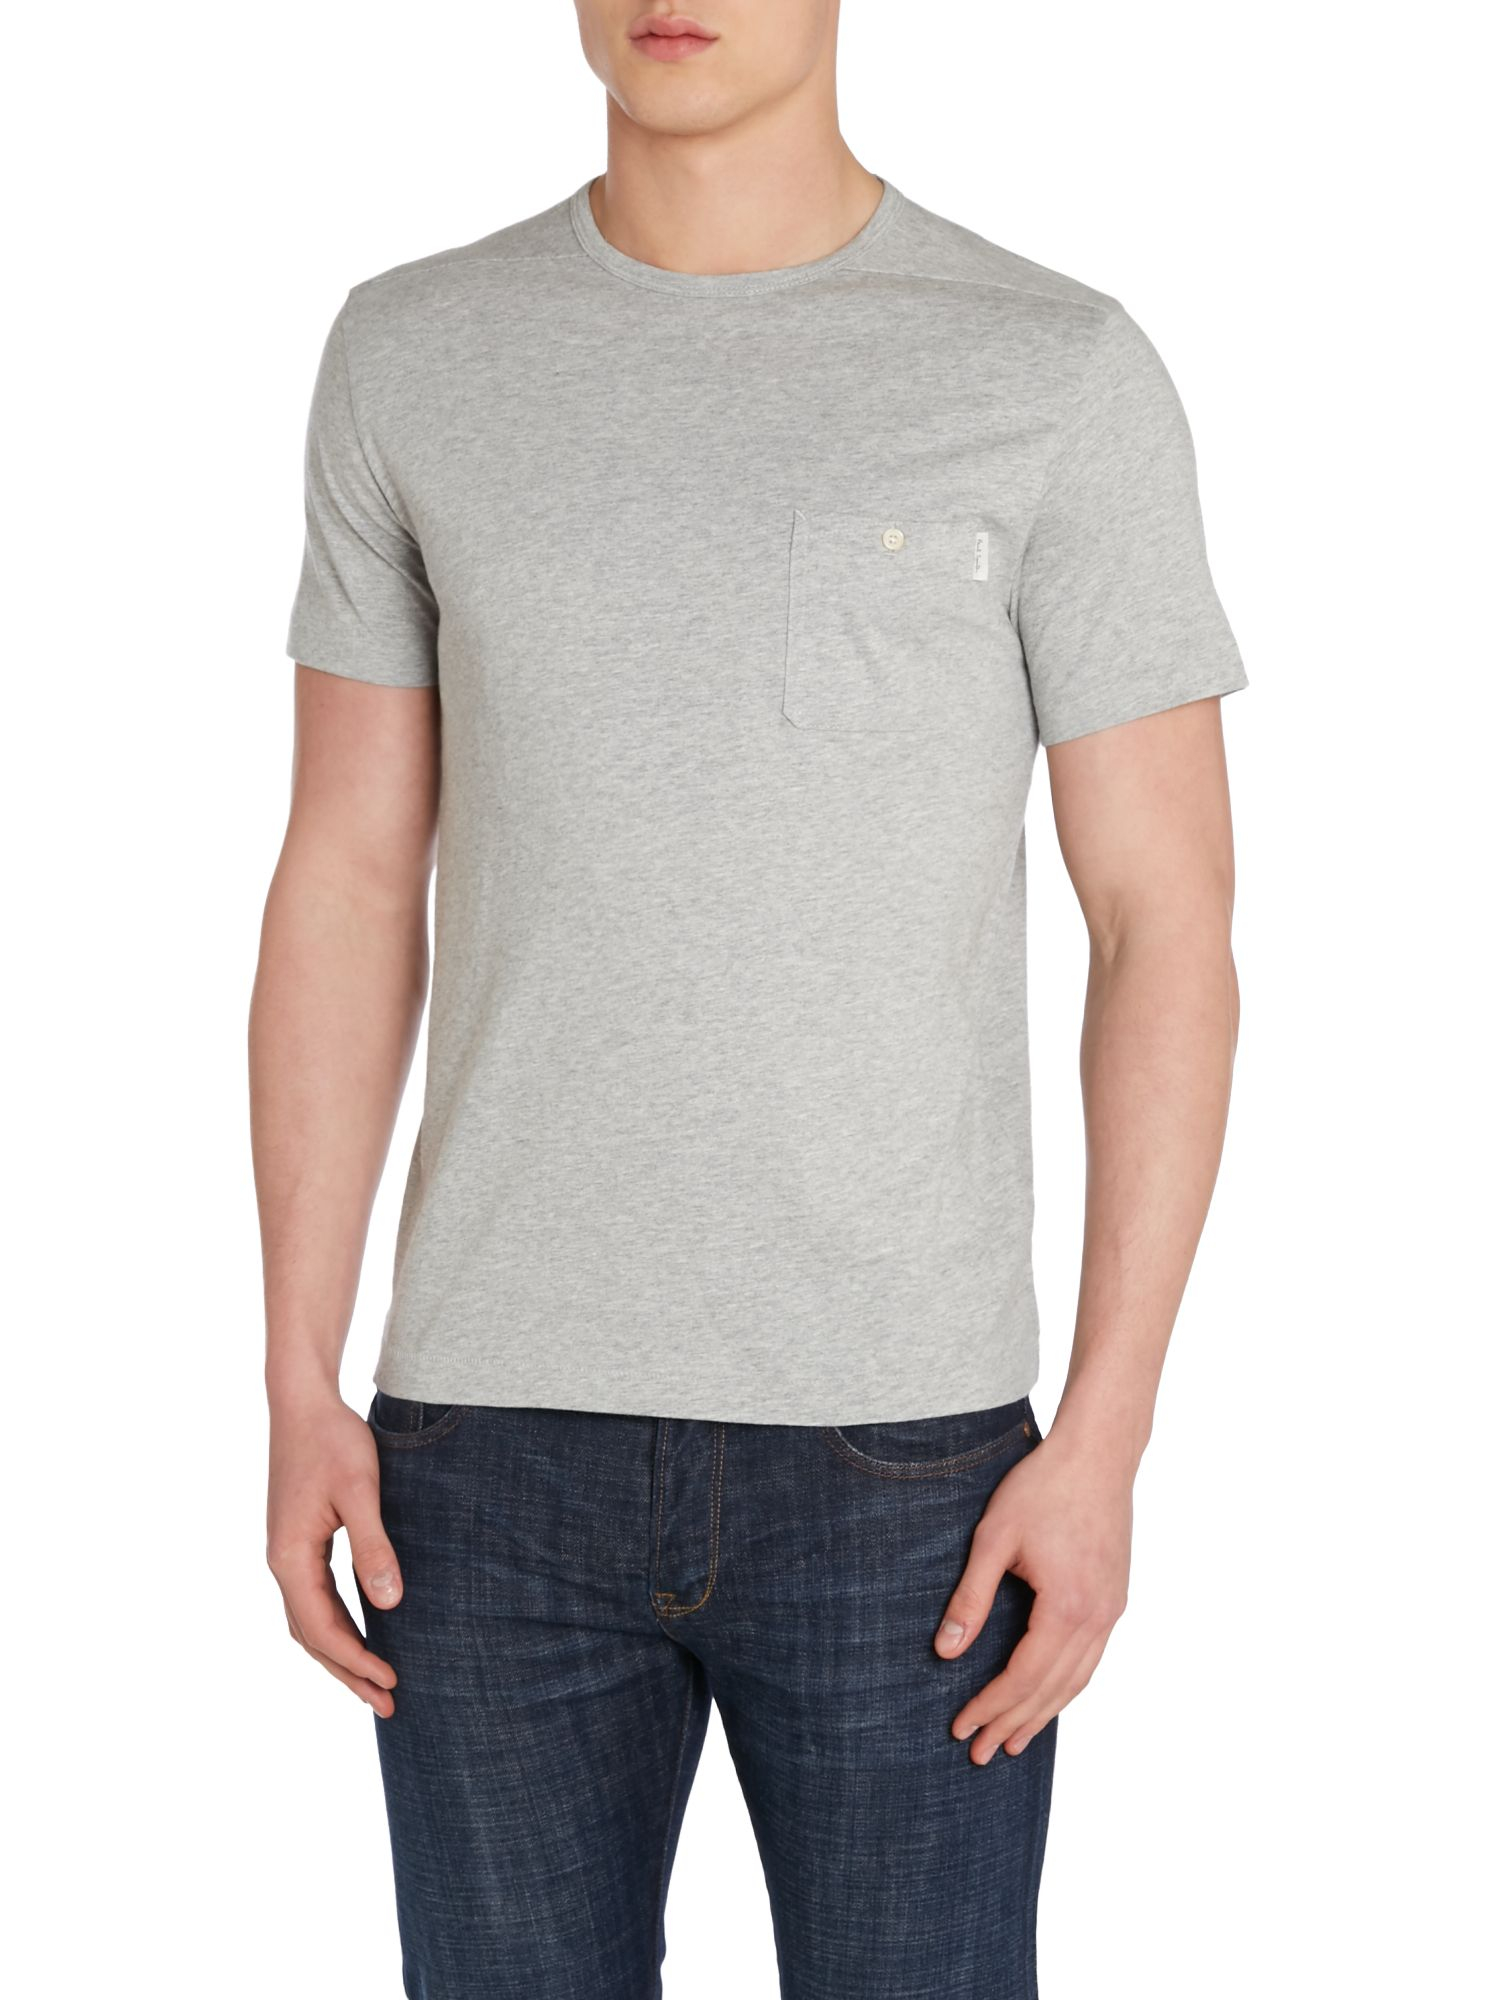 Paul Smith Stripe Crew Neck Regular Fit T Shirt In Gray